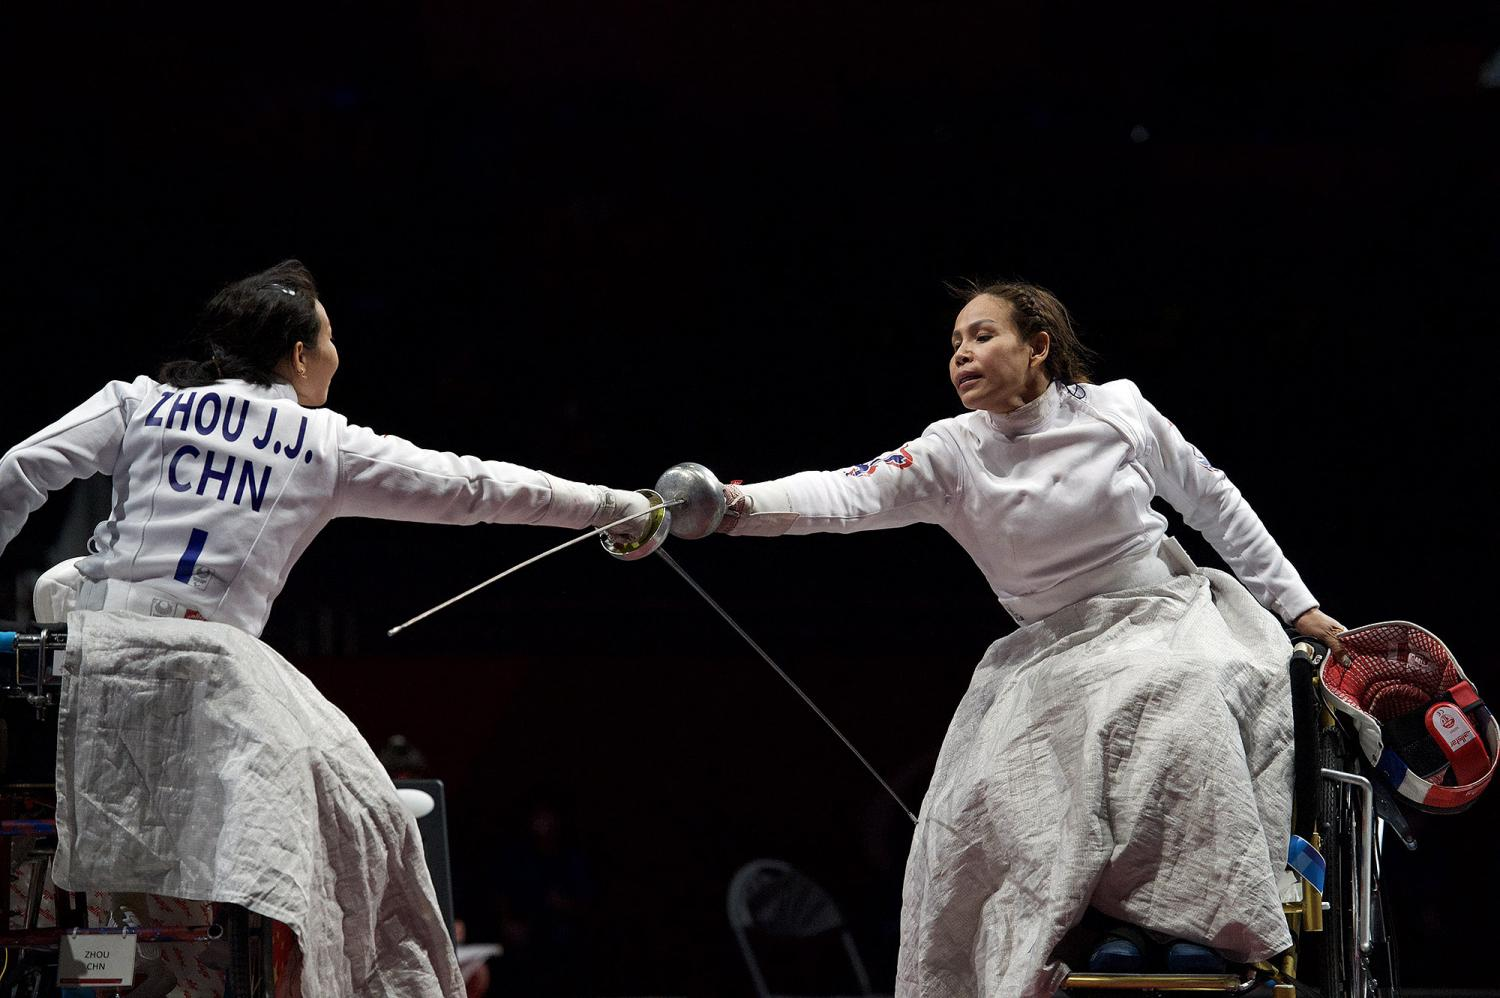 China's Zhou Jingjing (left) congratulates Thai wheelchair fencer Saysunee Jana on her victory in the bronze medal match in the women's epee individual category B event at the Tokyo Paralympics on Thursday.